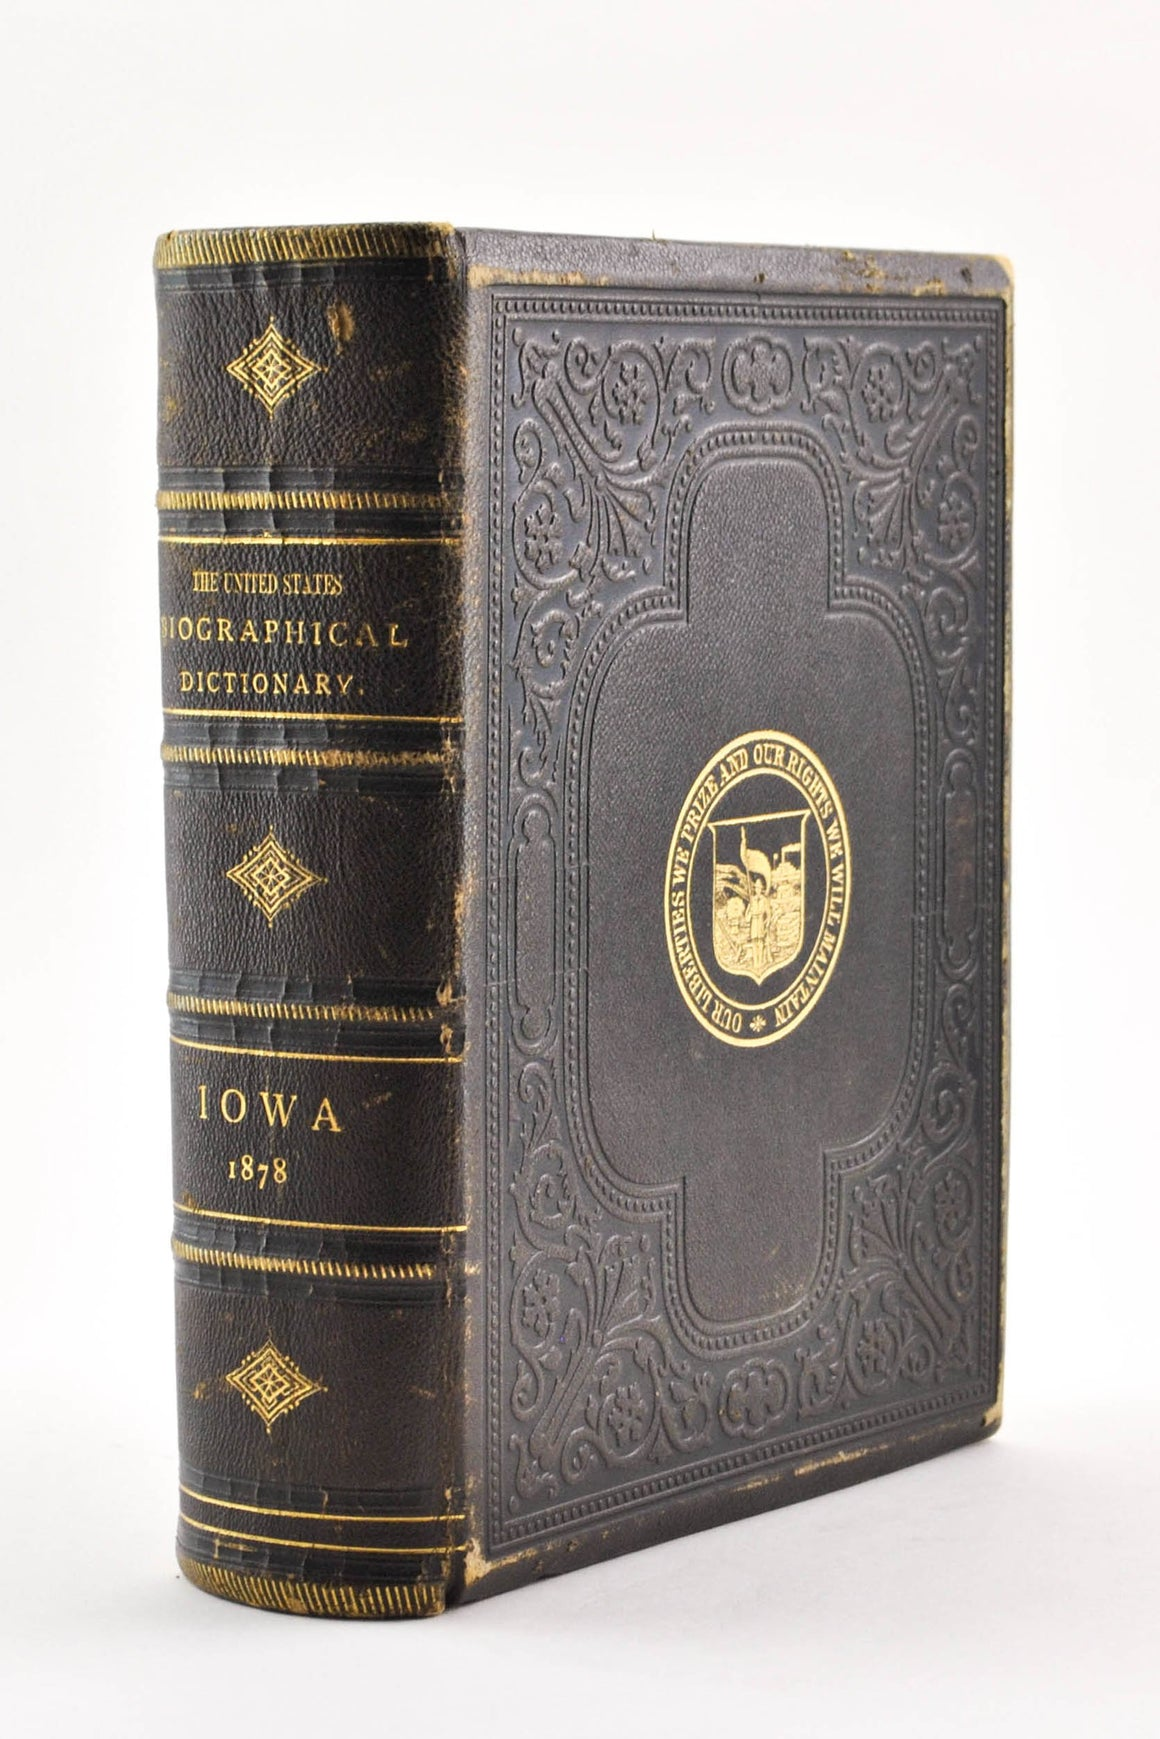 The United States Biographical Dictionary and Portrait Gallery Iowa 1878